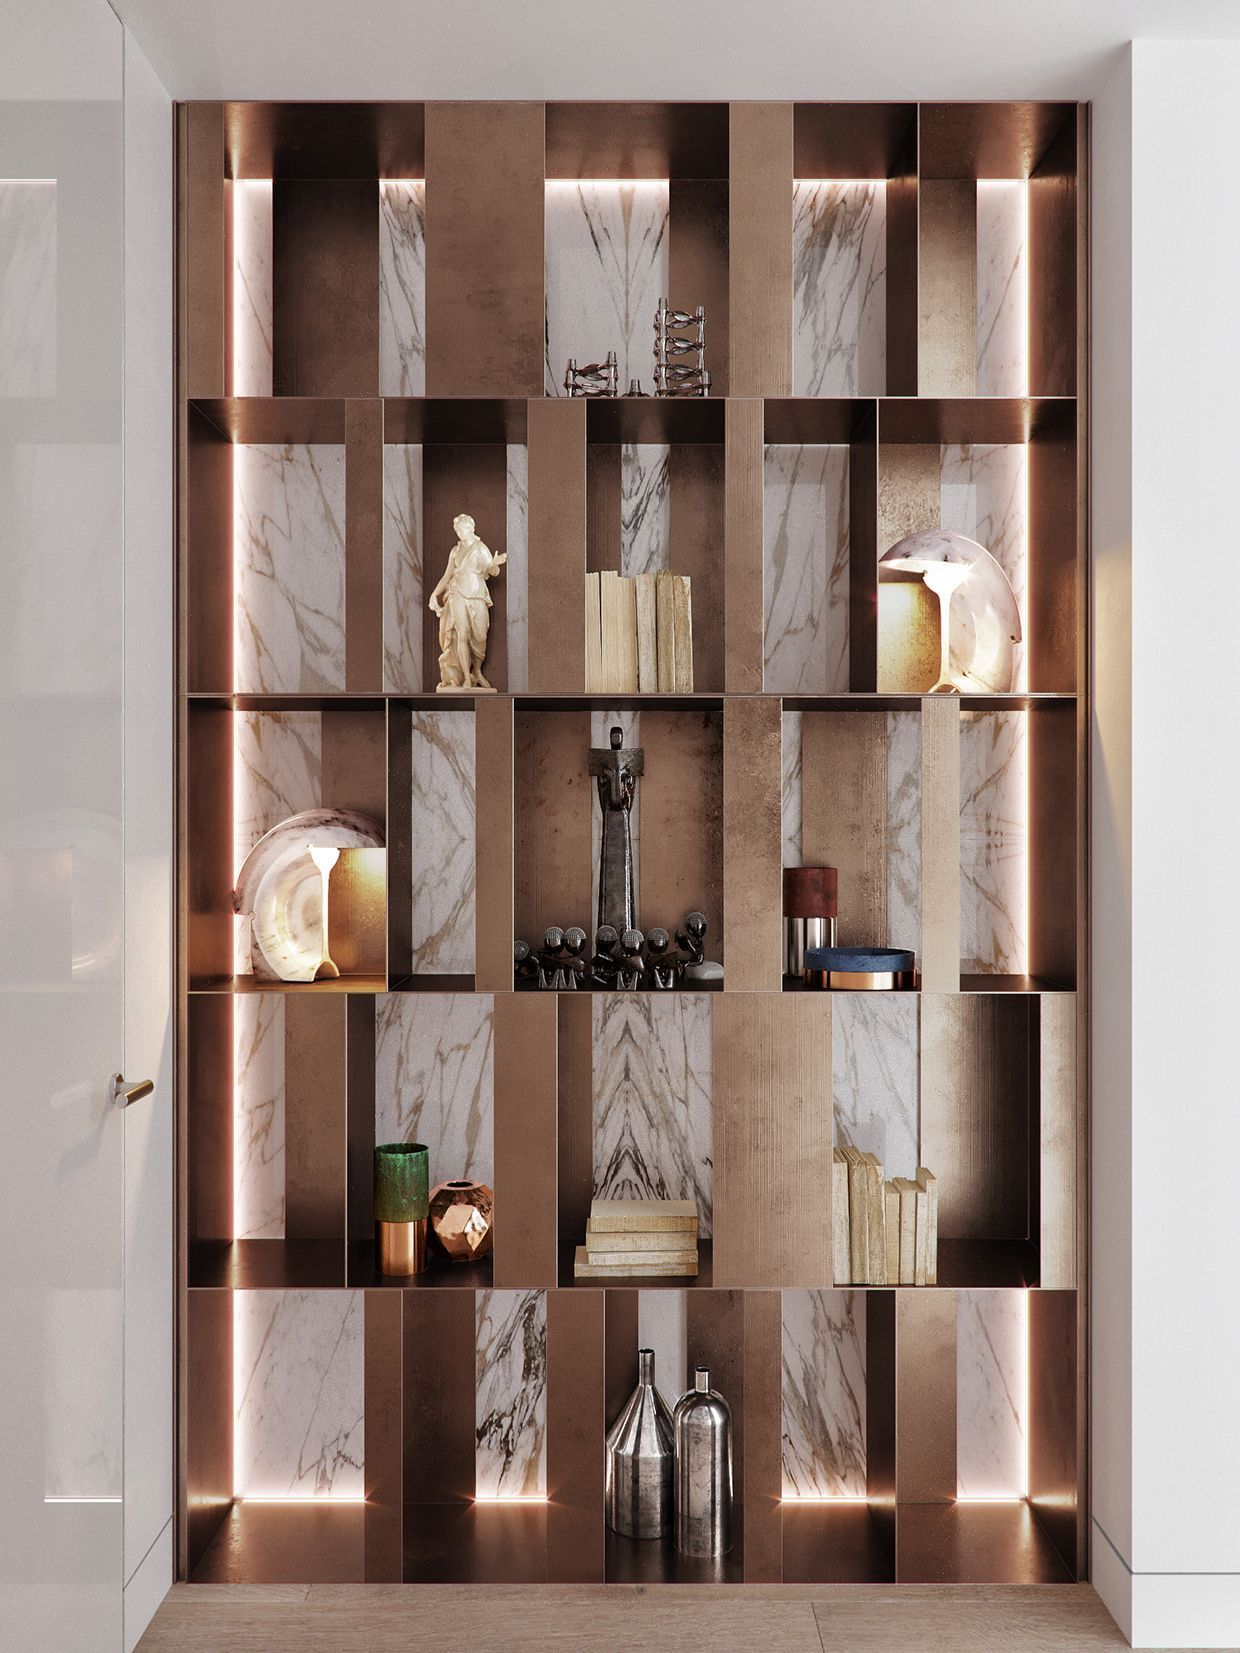 More Ideas Below How To Make Diy Display Cases Design How To Build Wooden Diy Display Cases